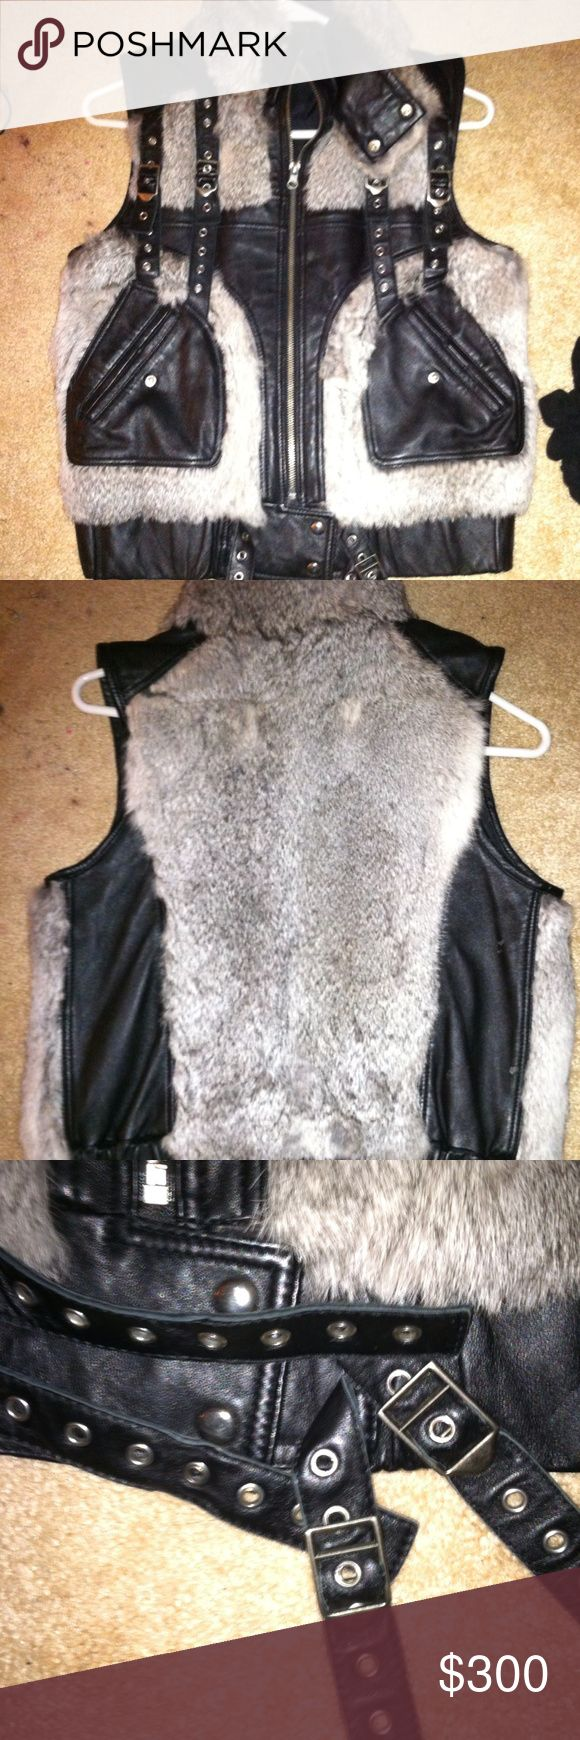 CUSTOM MADE REAL LEATHER/RABBIT FUR VEST SIZE SM CUSTOM MADE FOR ME MADE OF REAL LEATHER&RABBIT FUR SUCH A BAD BETCH VEST INSANE DOPE SIZE SMALL WOULD FIT XS-MED OFFER OR TRADES WELCOME CUSTOM MADE Jackets & Coats Vests